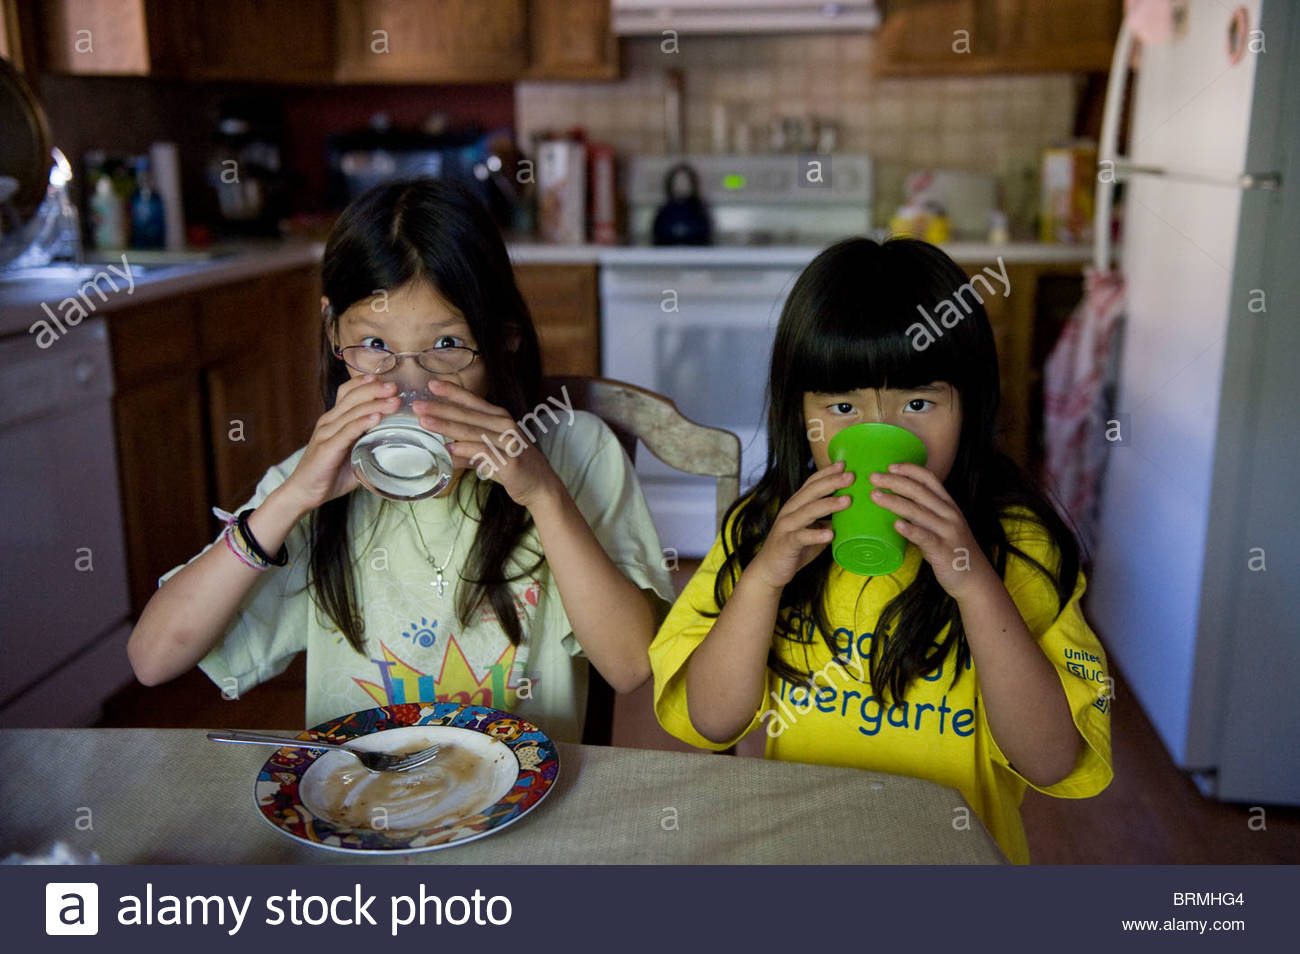 Two young girls drink their milk before heading to school. - Stock Image